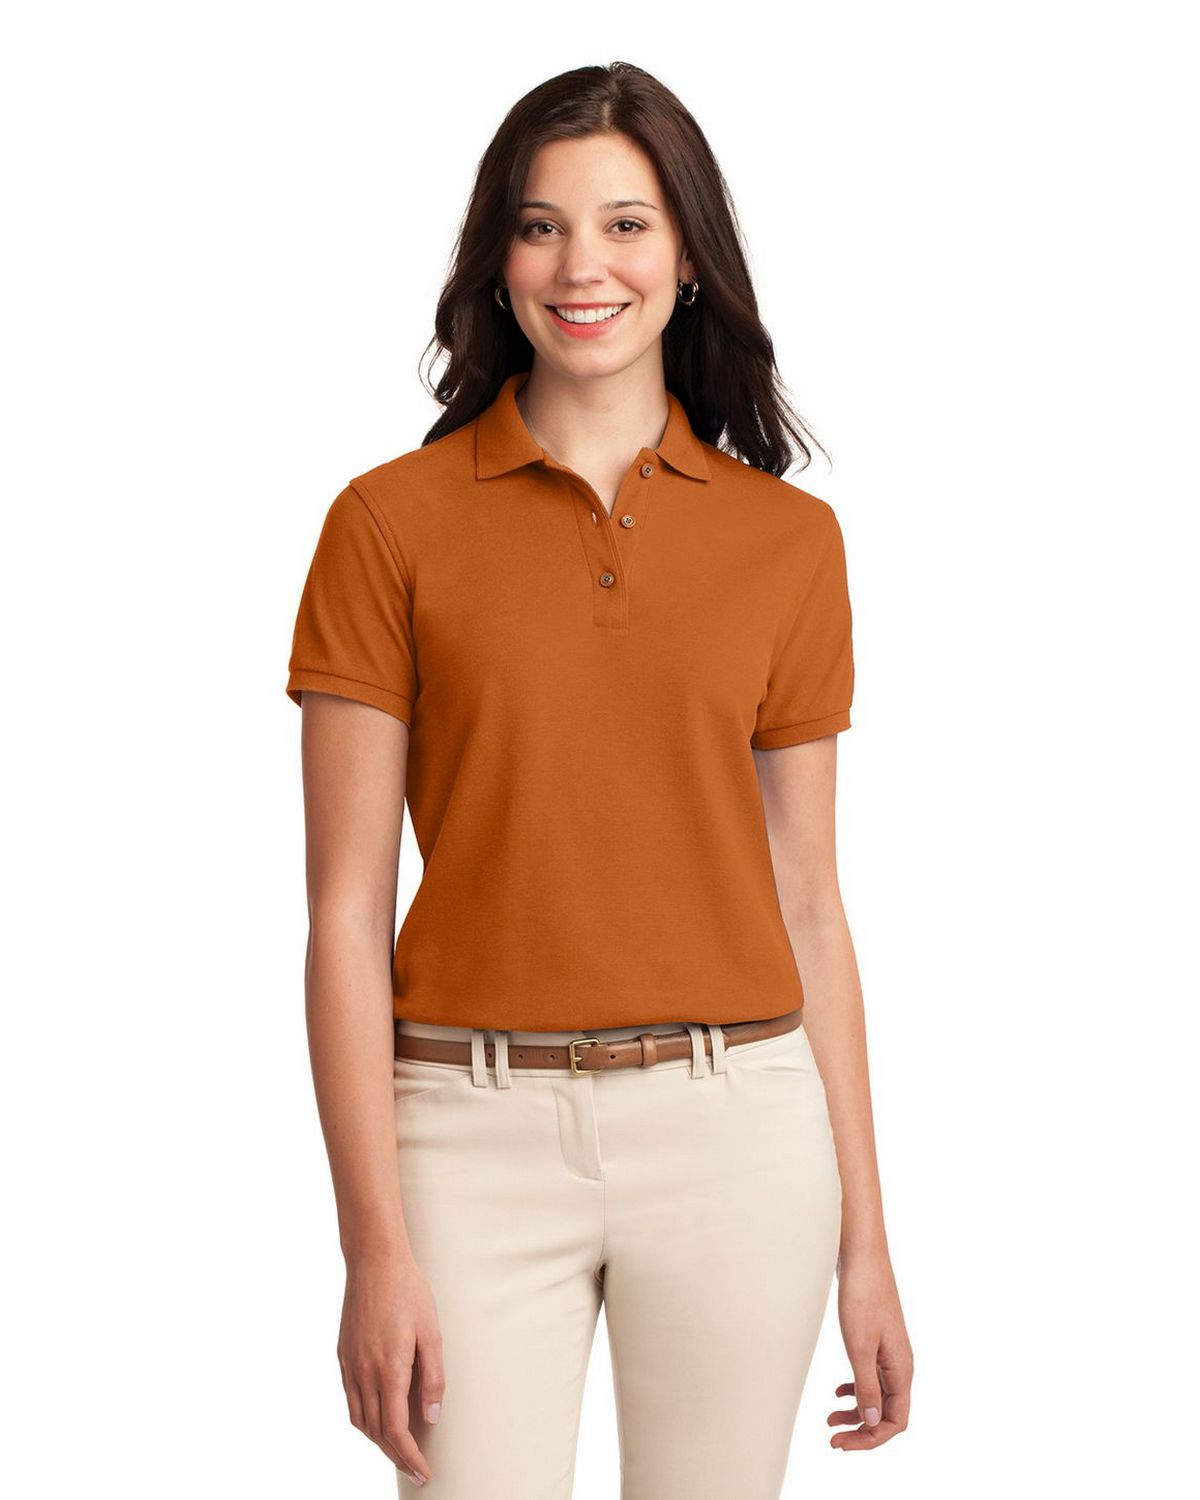 Port Authority L500 Women's Silk Touch Polo - Texas Orange - XS #silk